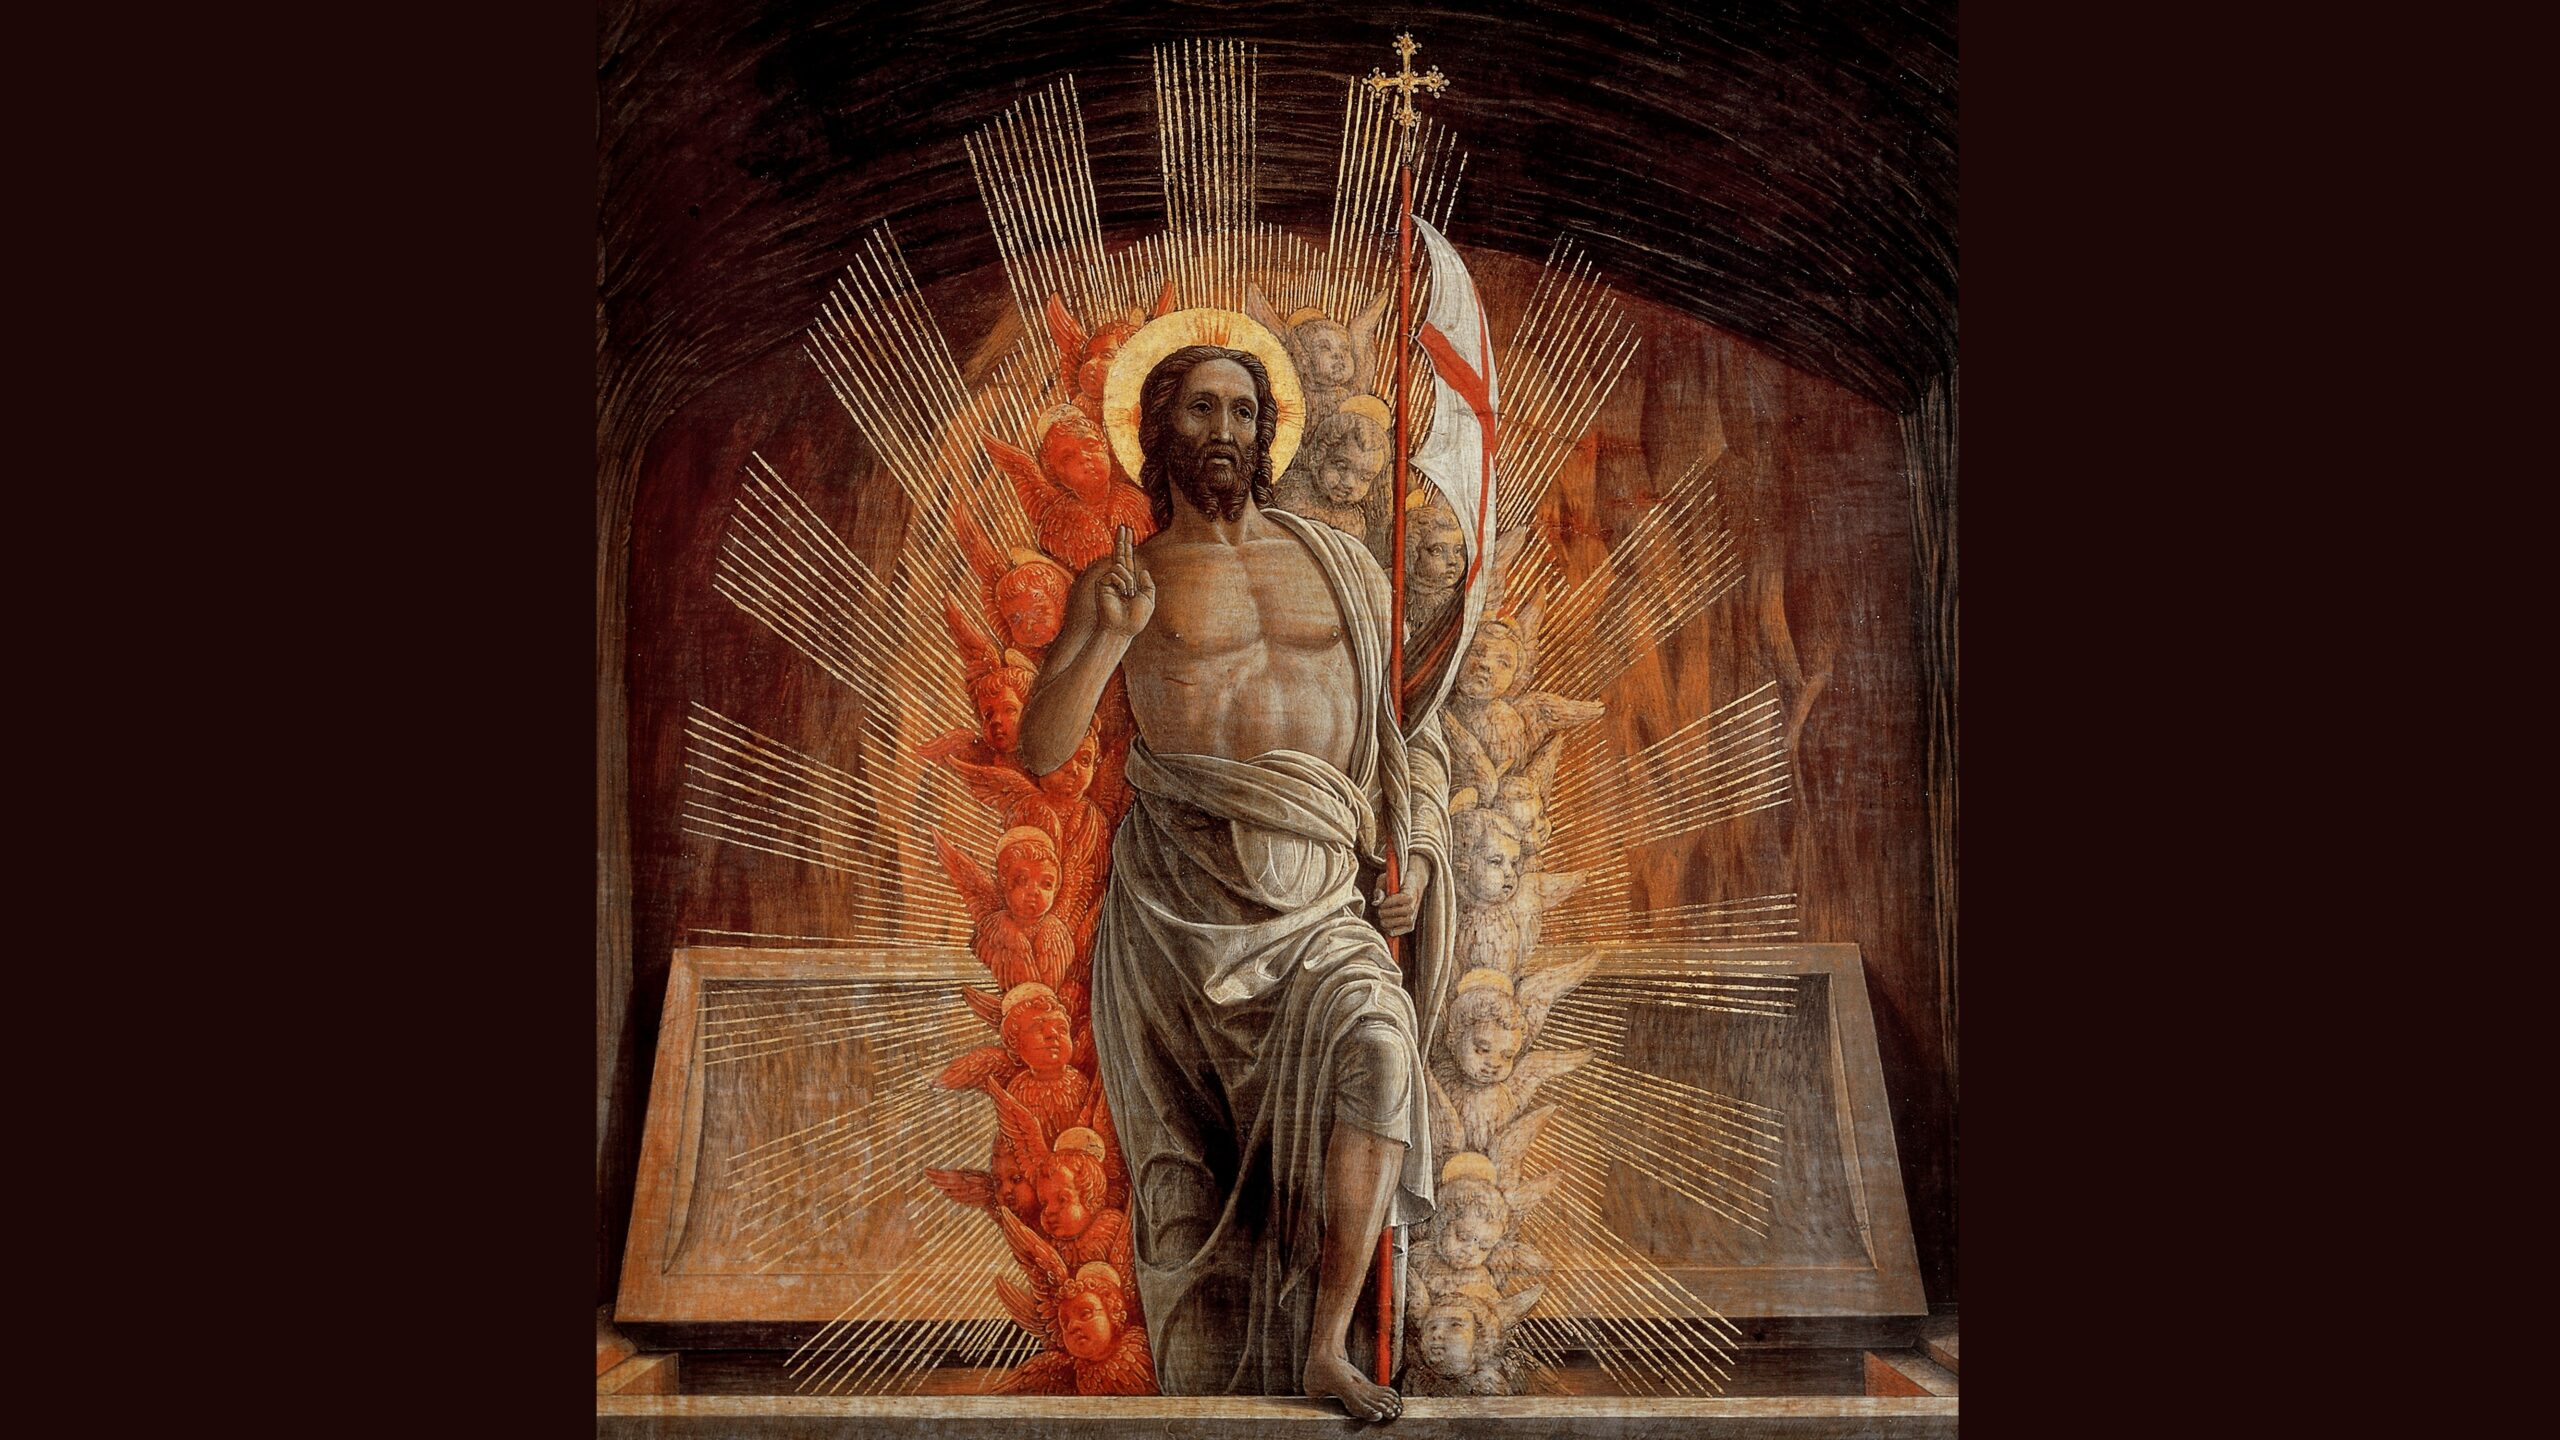 Wondrous Day! Jesus has Died, Descended to the Dead, and Risen Again to Life Forever!